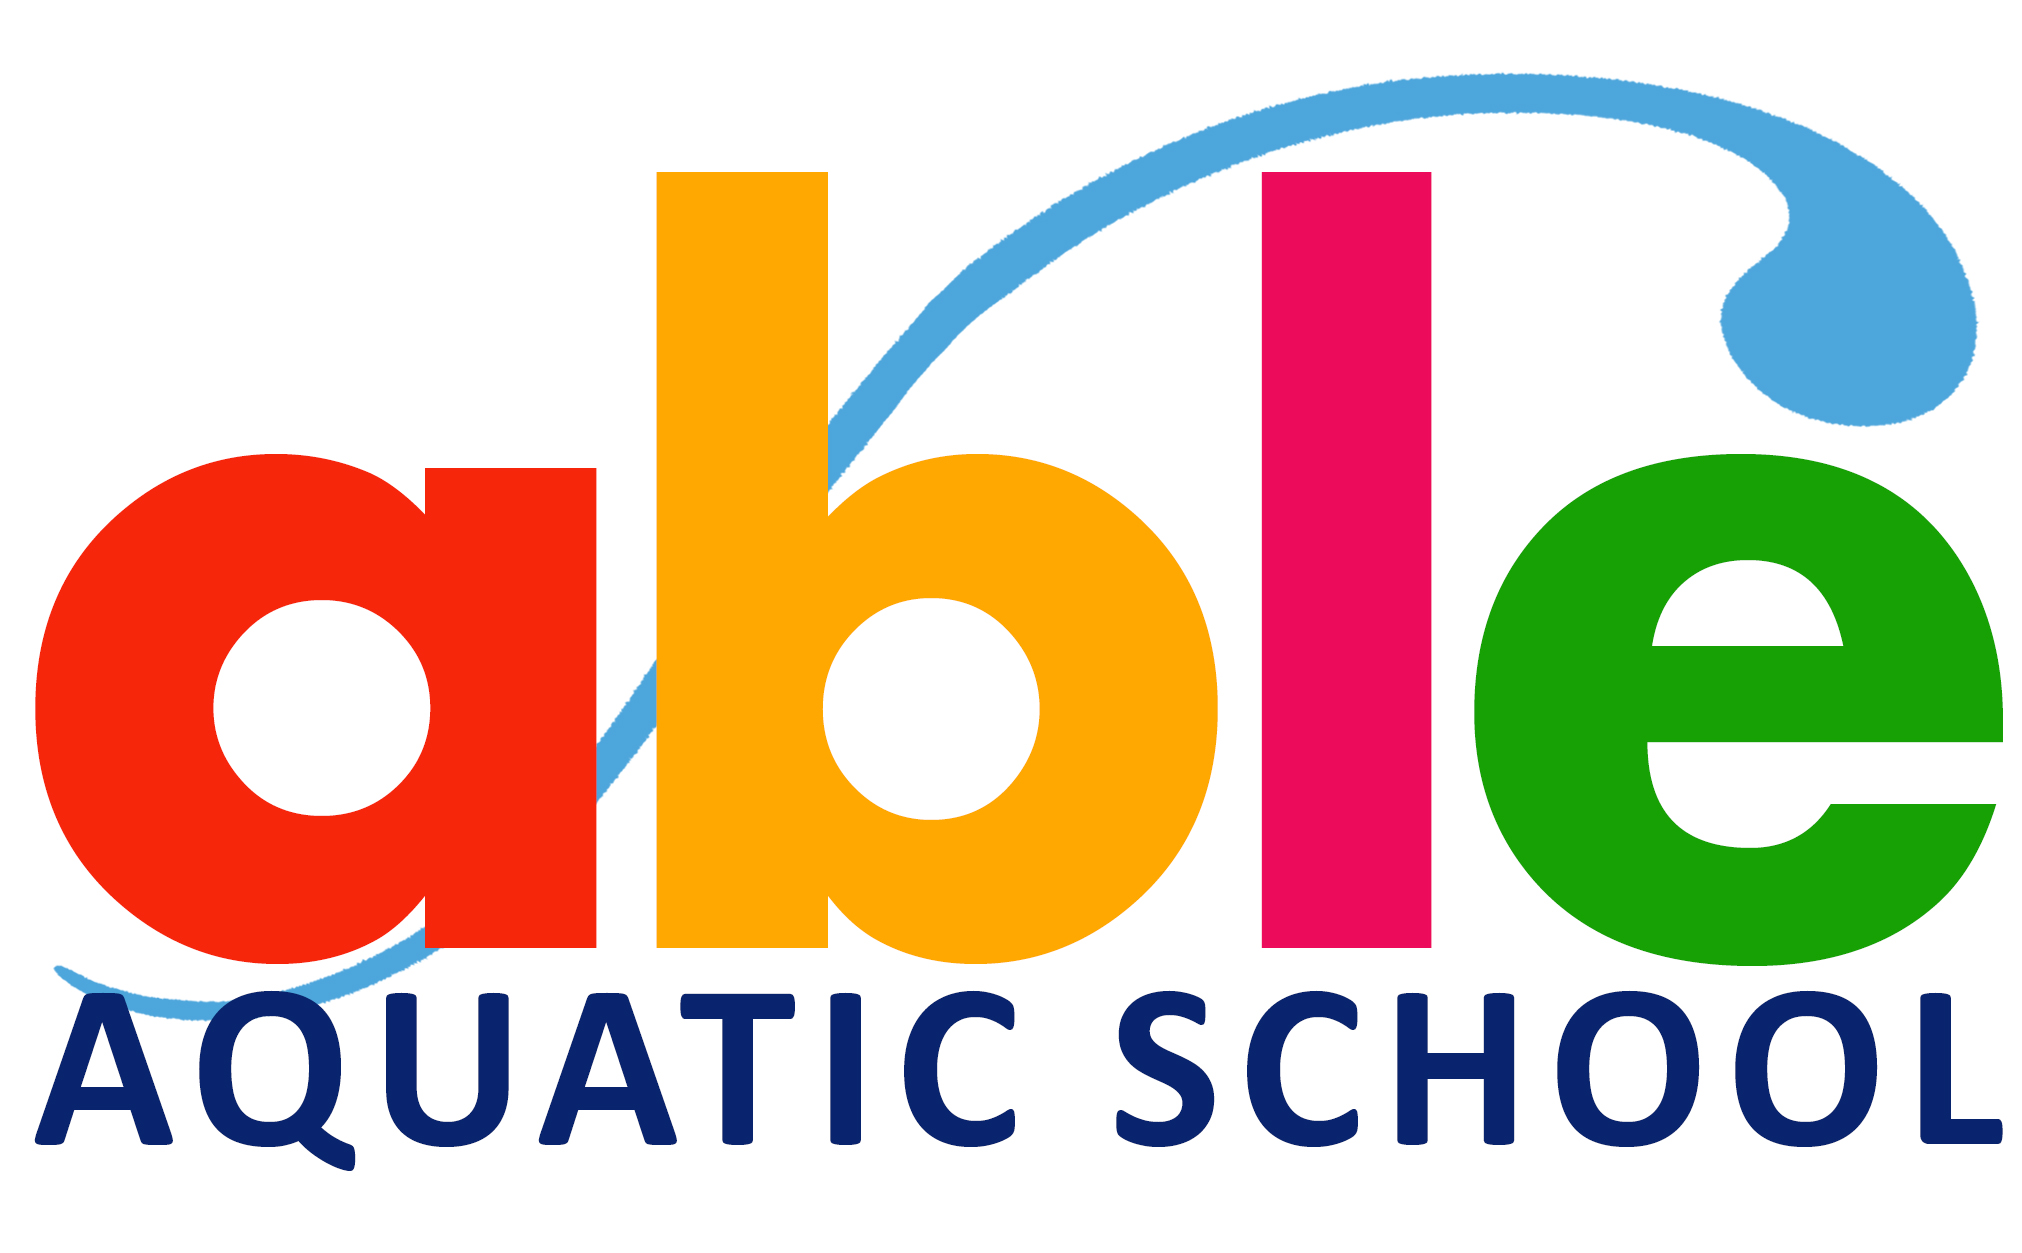 Able Aquatic School